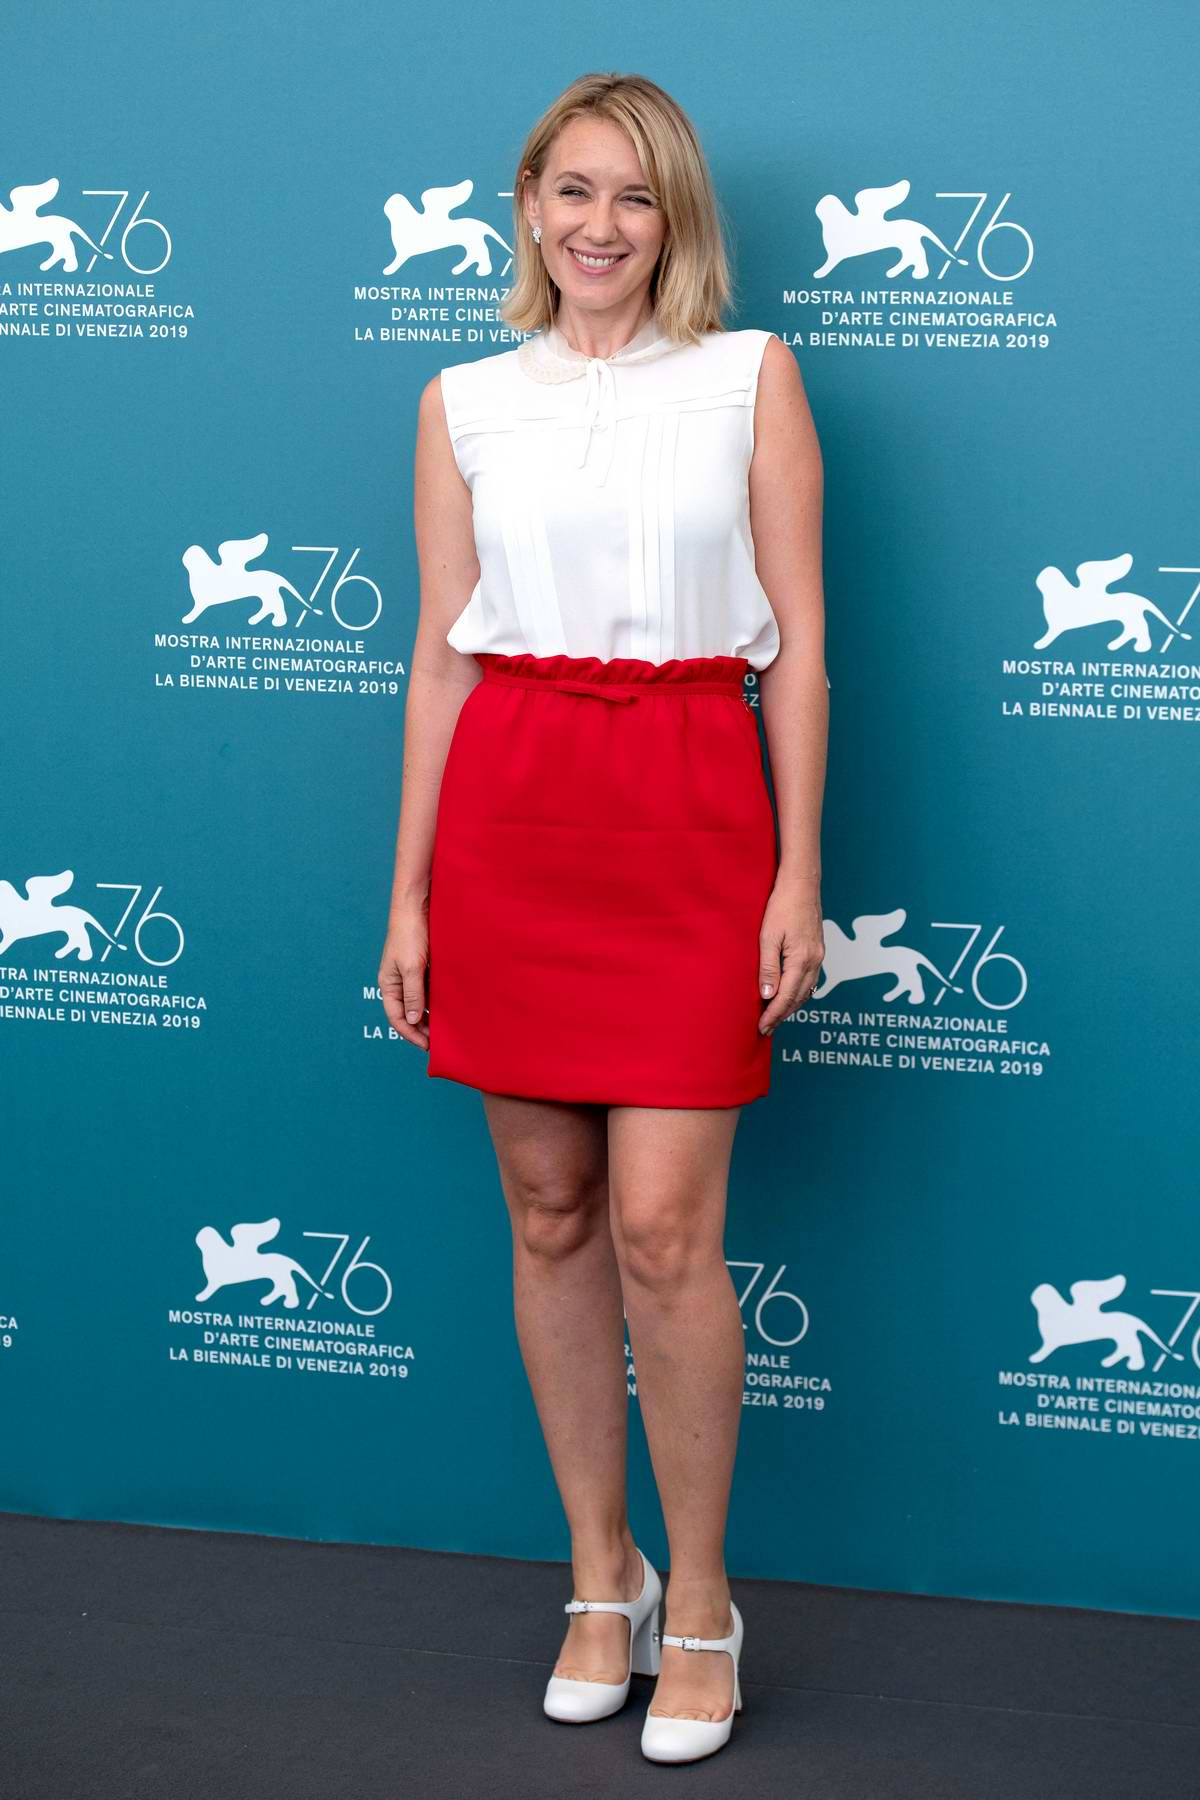 Ludivine Sagnier attends 'La Vérité' (The Truth) photocall during the 76th Venice Film Festival at Sala Grande in Venice, Italy